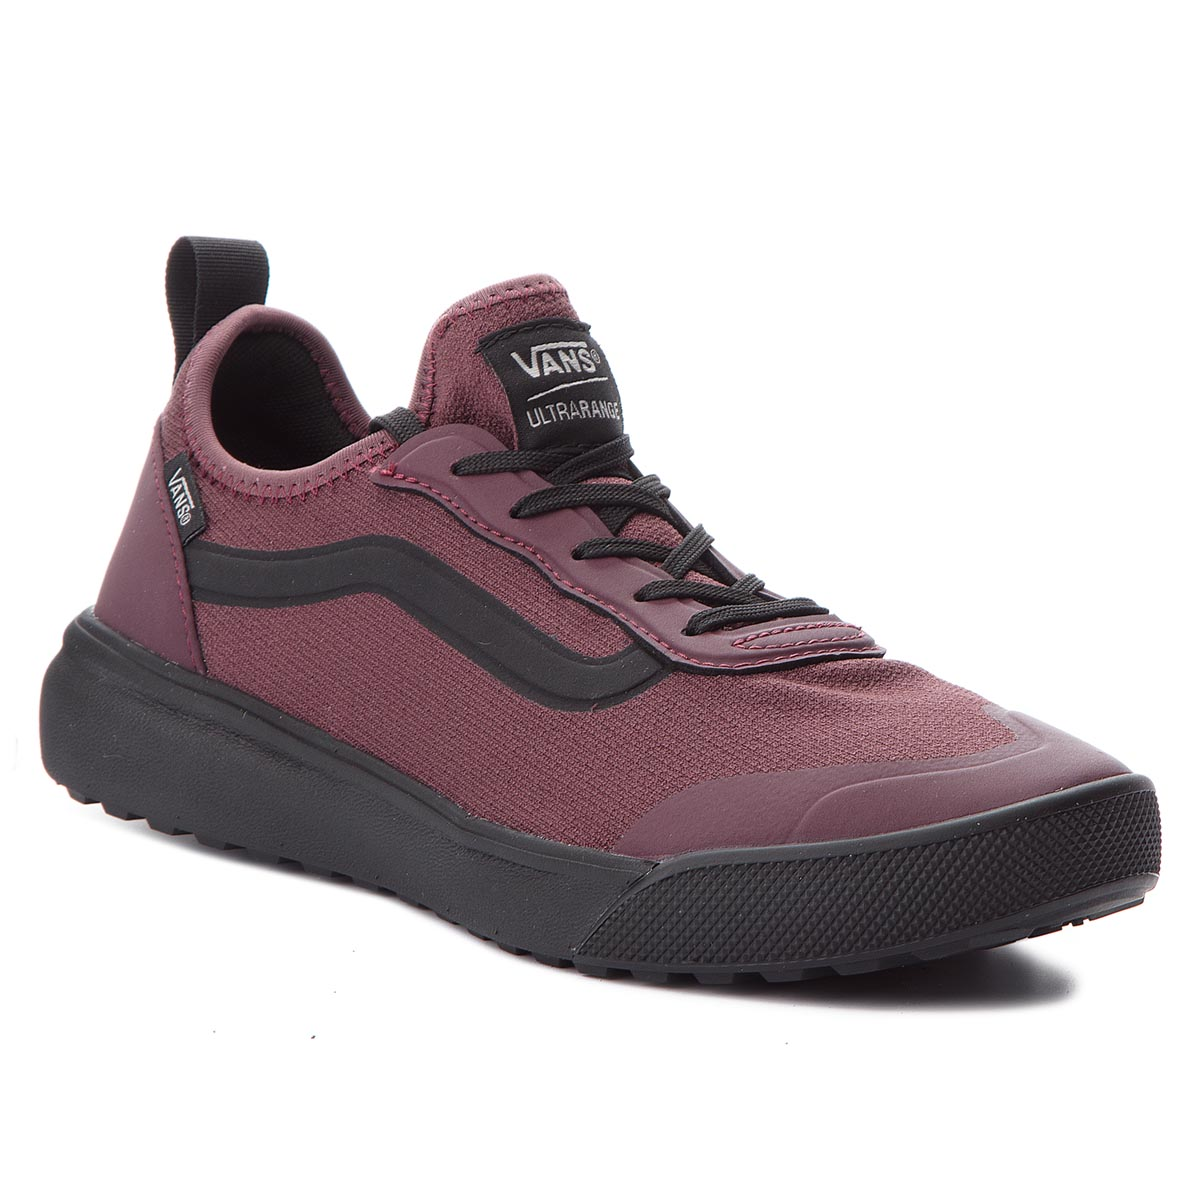 Sneakers VANS - UltraRange Ac VN0A3MVQYGU Catawba Grape/Black